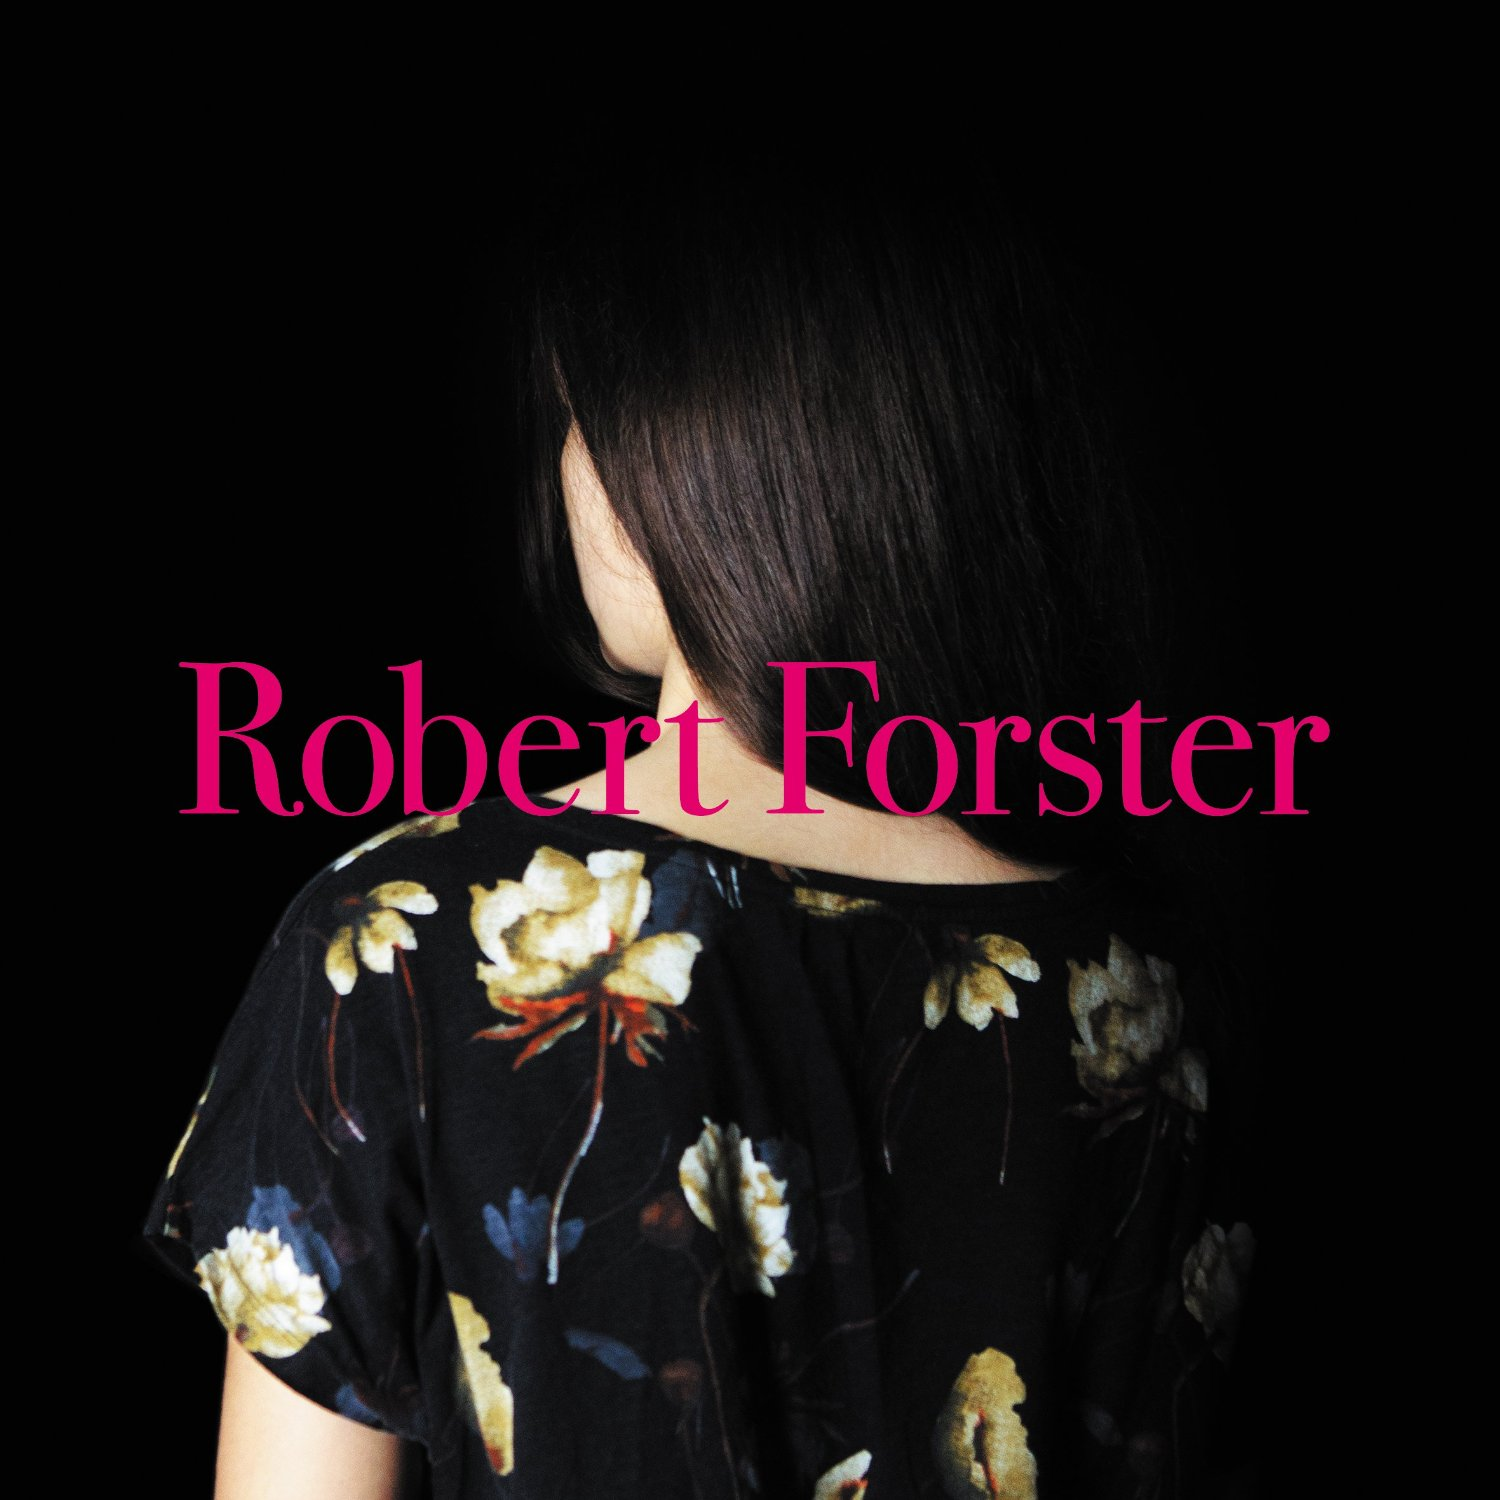 Robert Forster Songs To Play